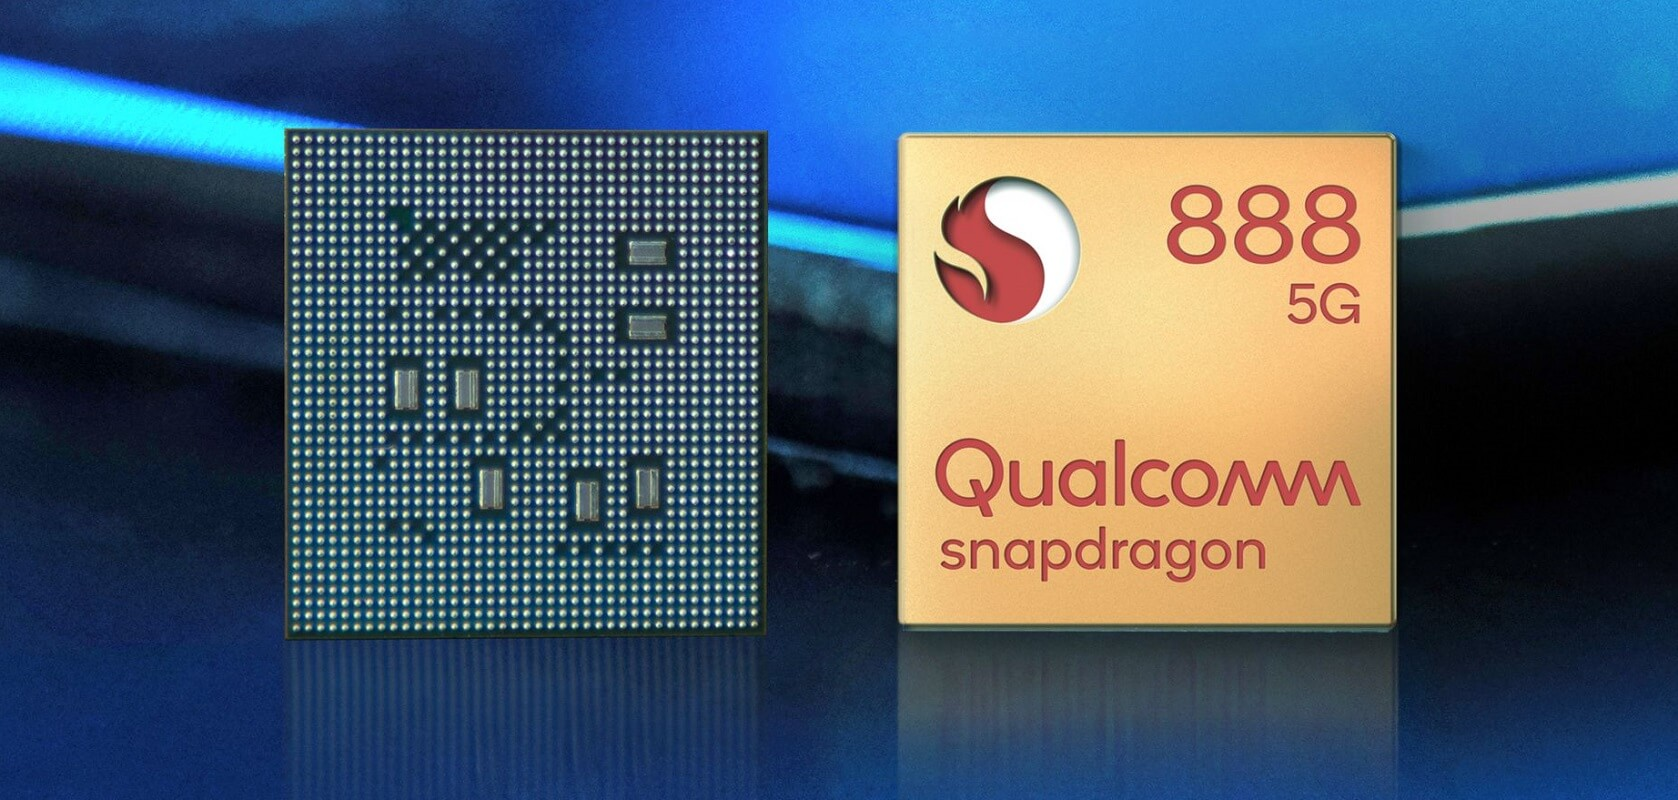 Snapdragon 888 chip design